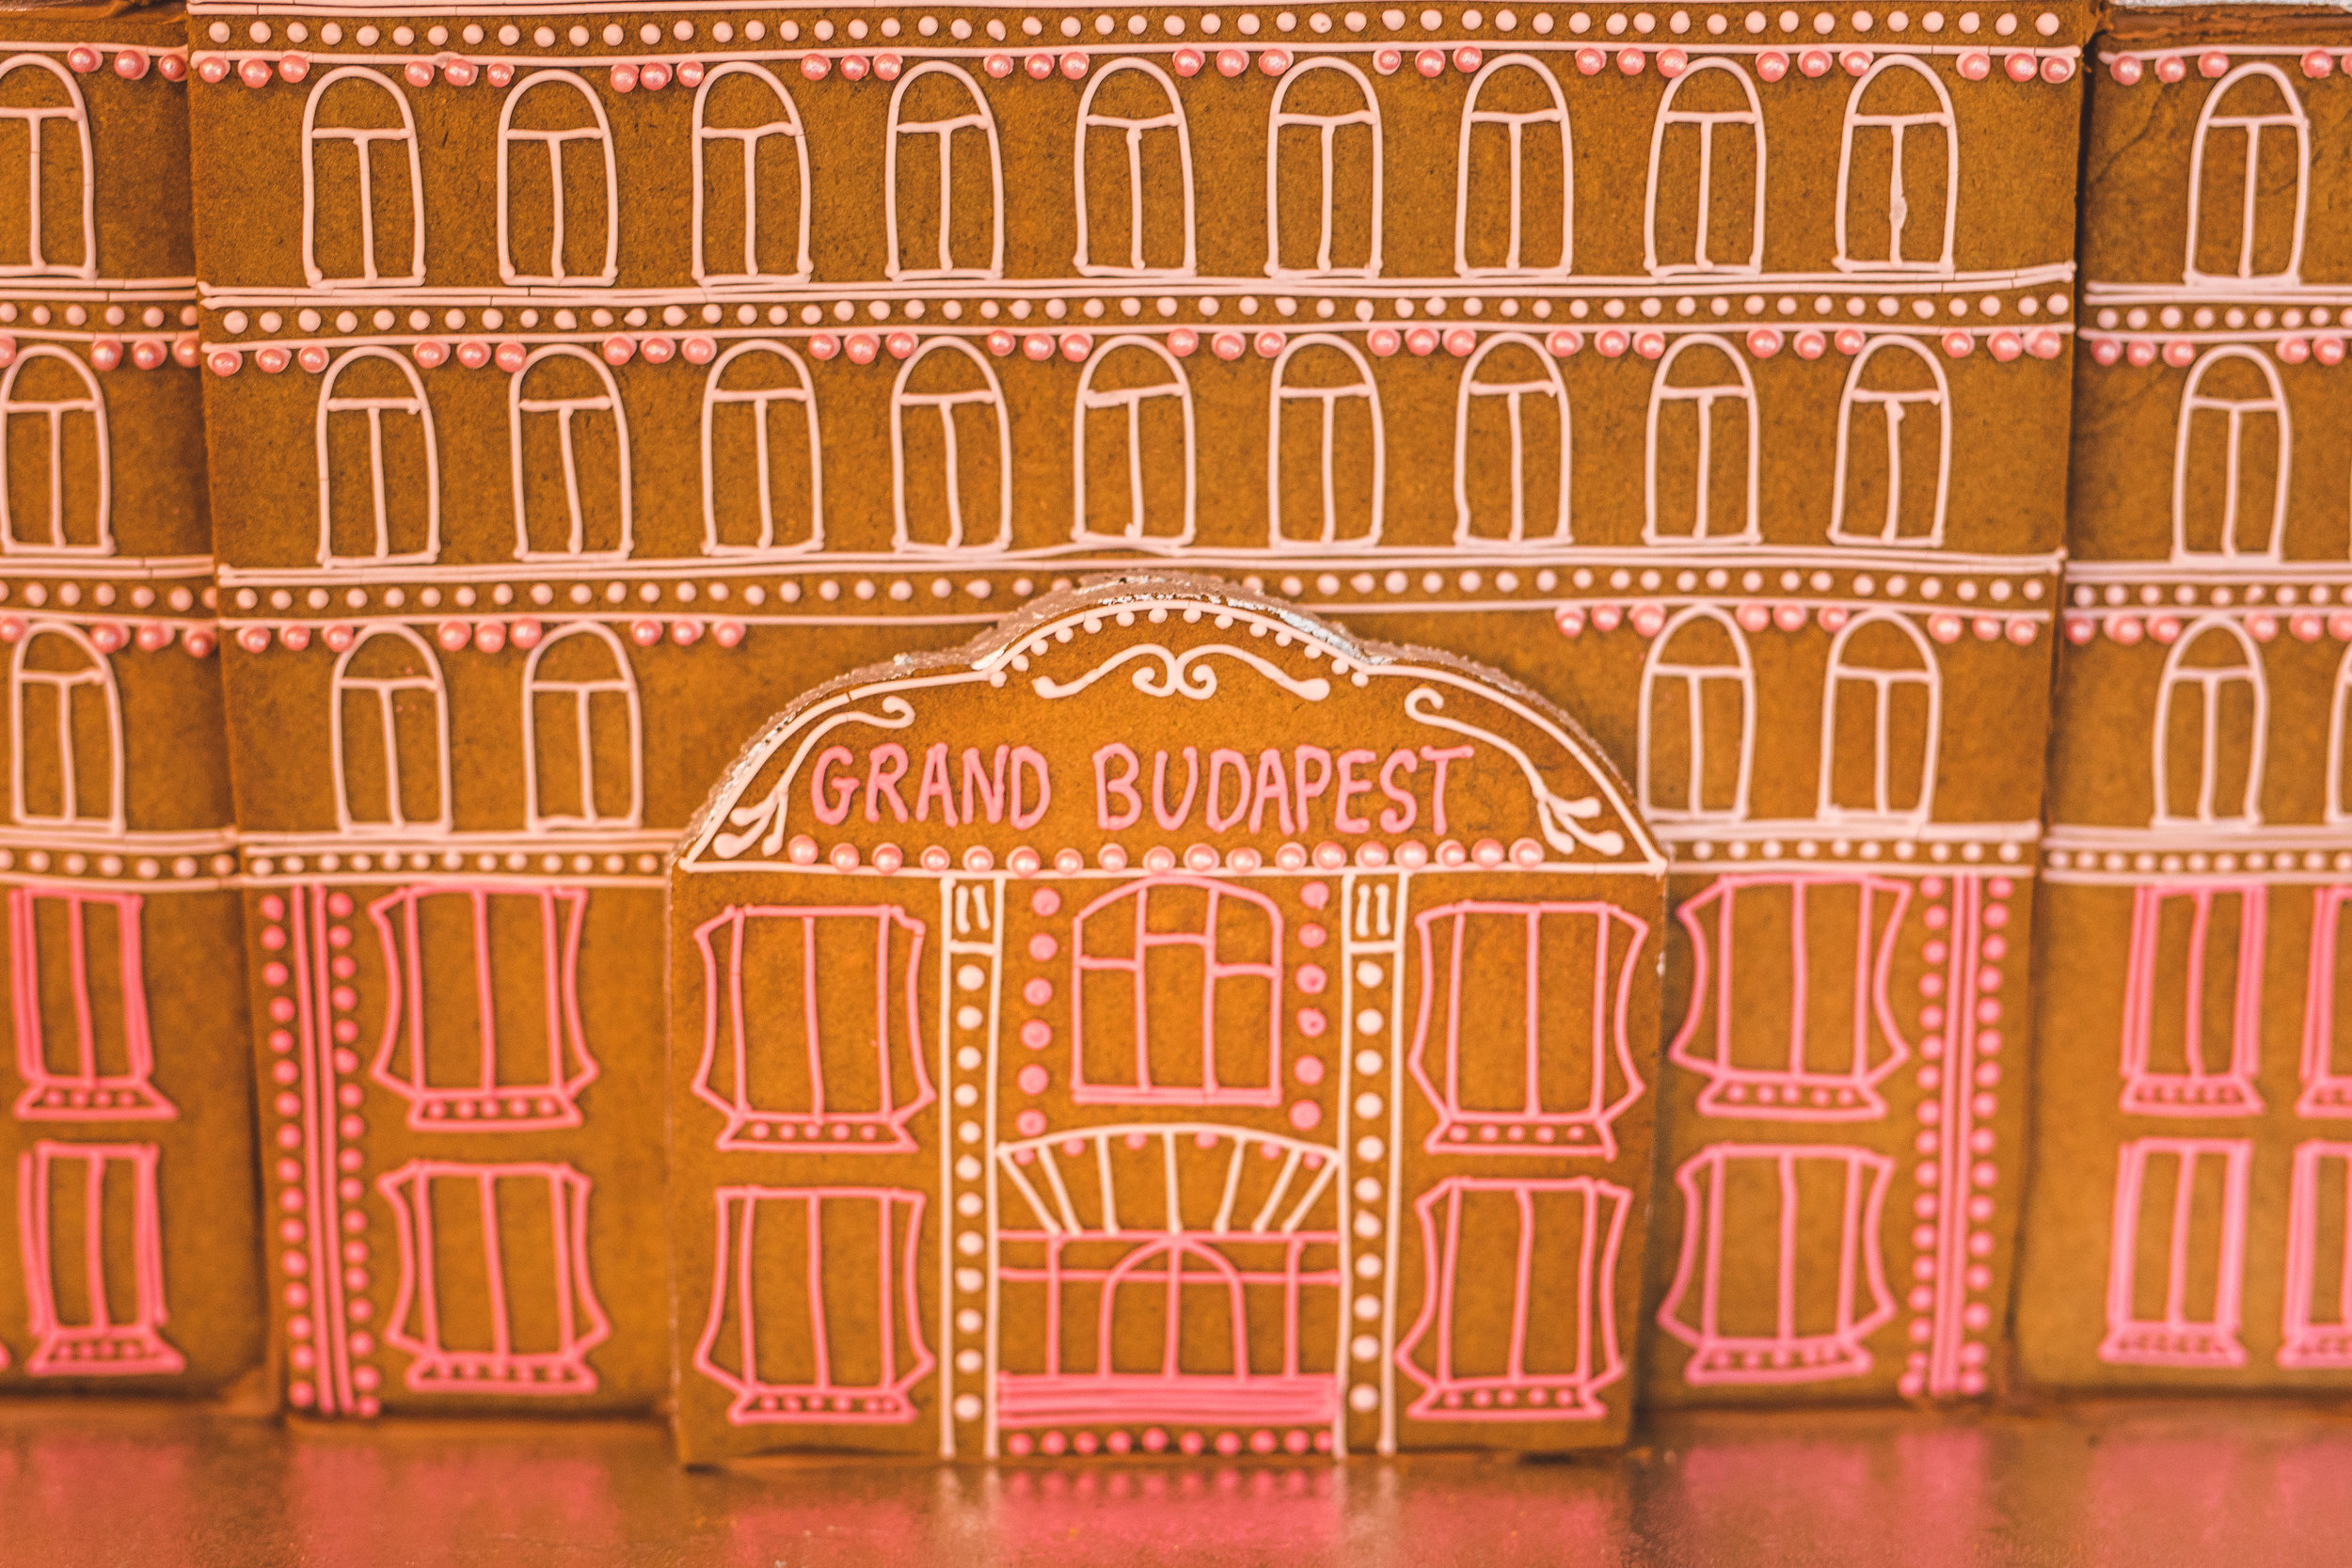 Hand-piped icing windows on The Gingerbread Grand Budapest Hotel. Photo by  Kirsty Mackenzie .